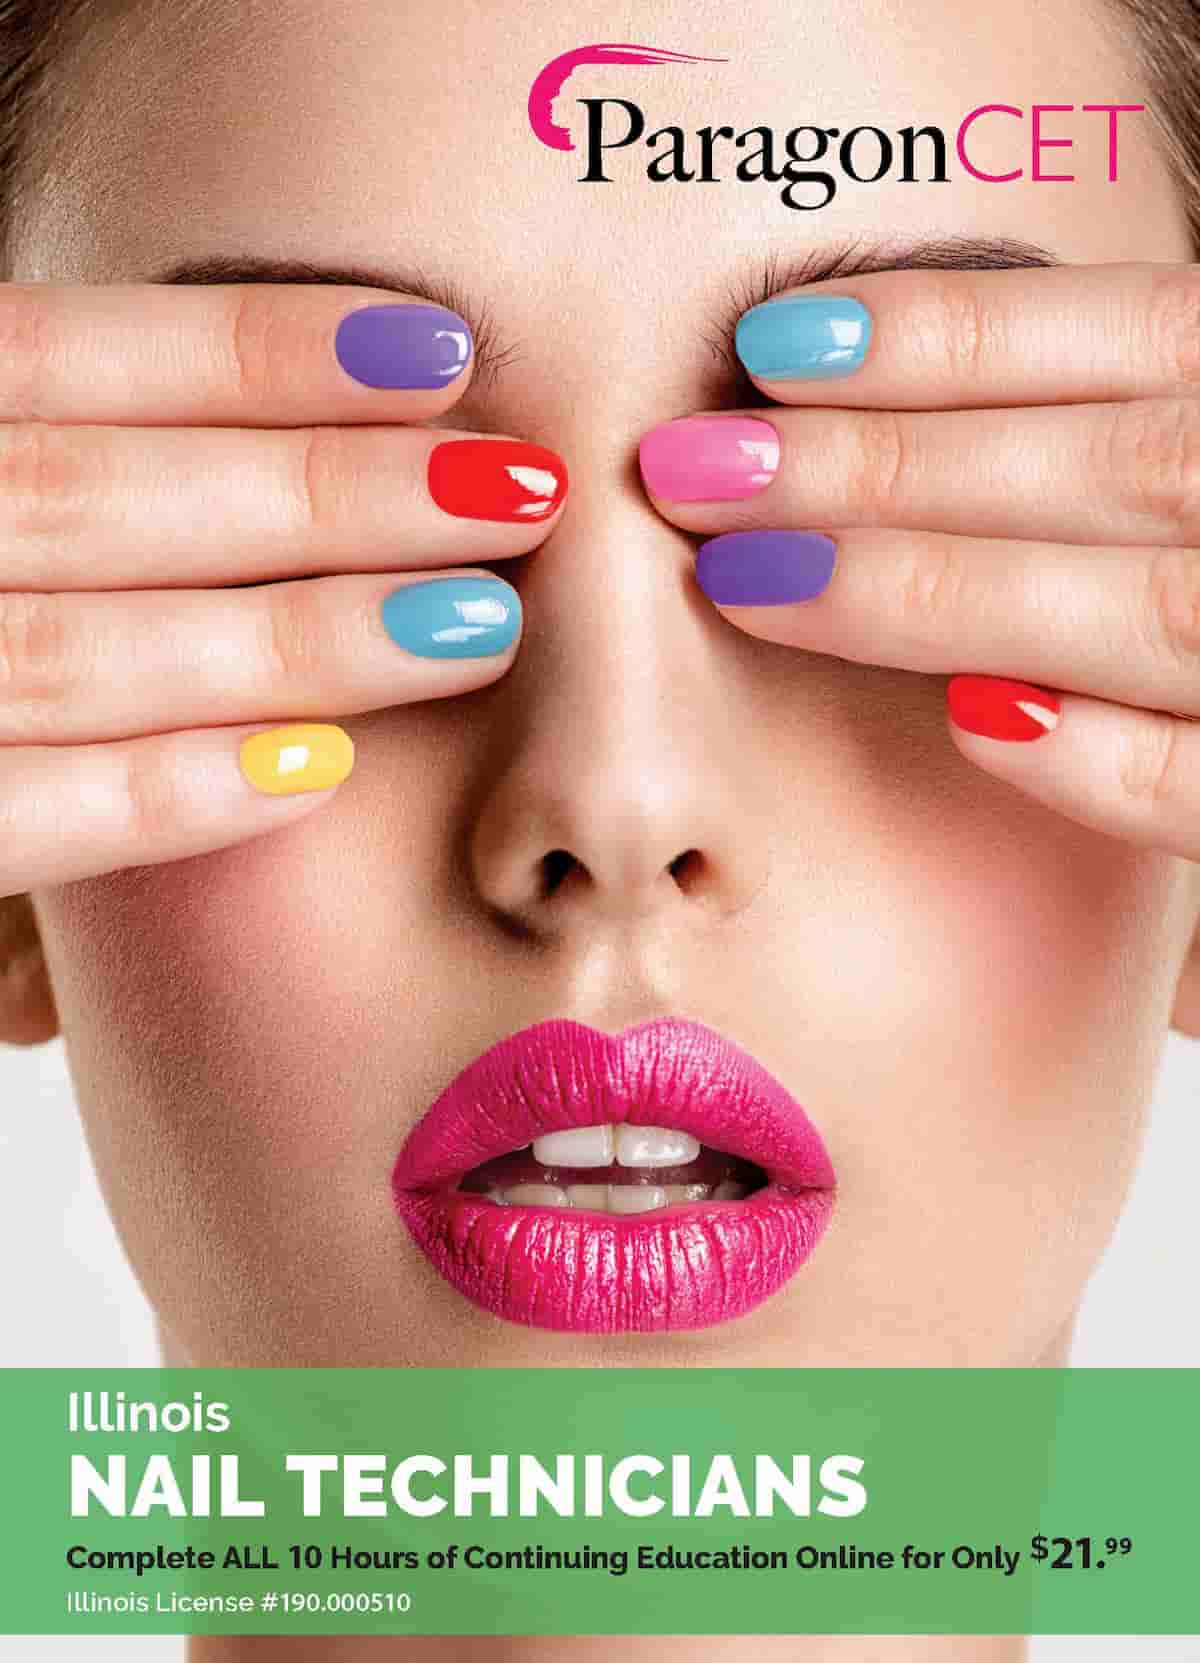 Illinois Nail Technicians 2020